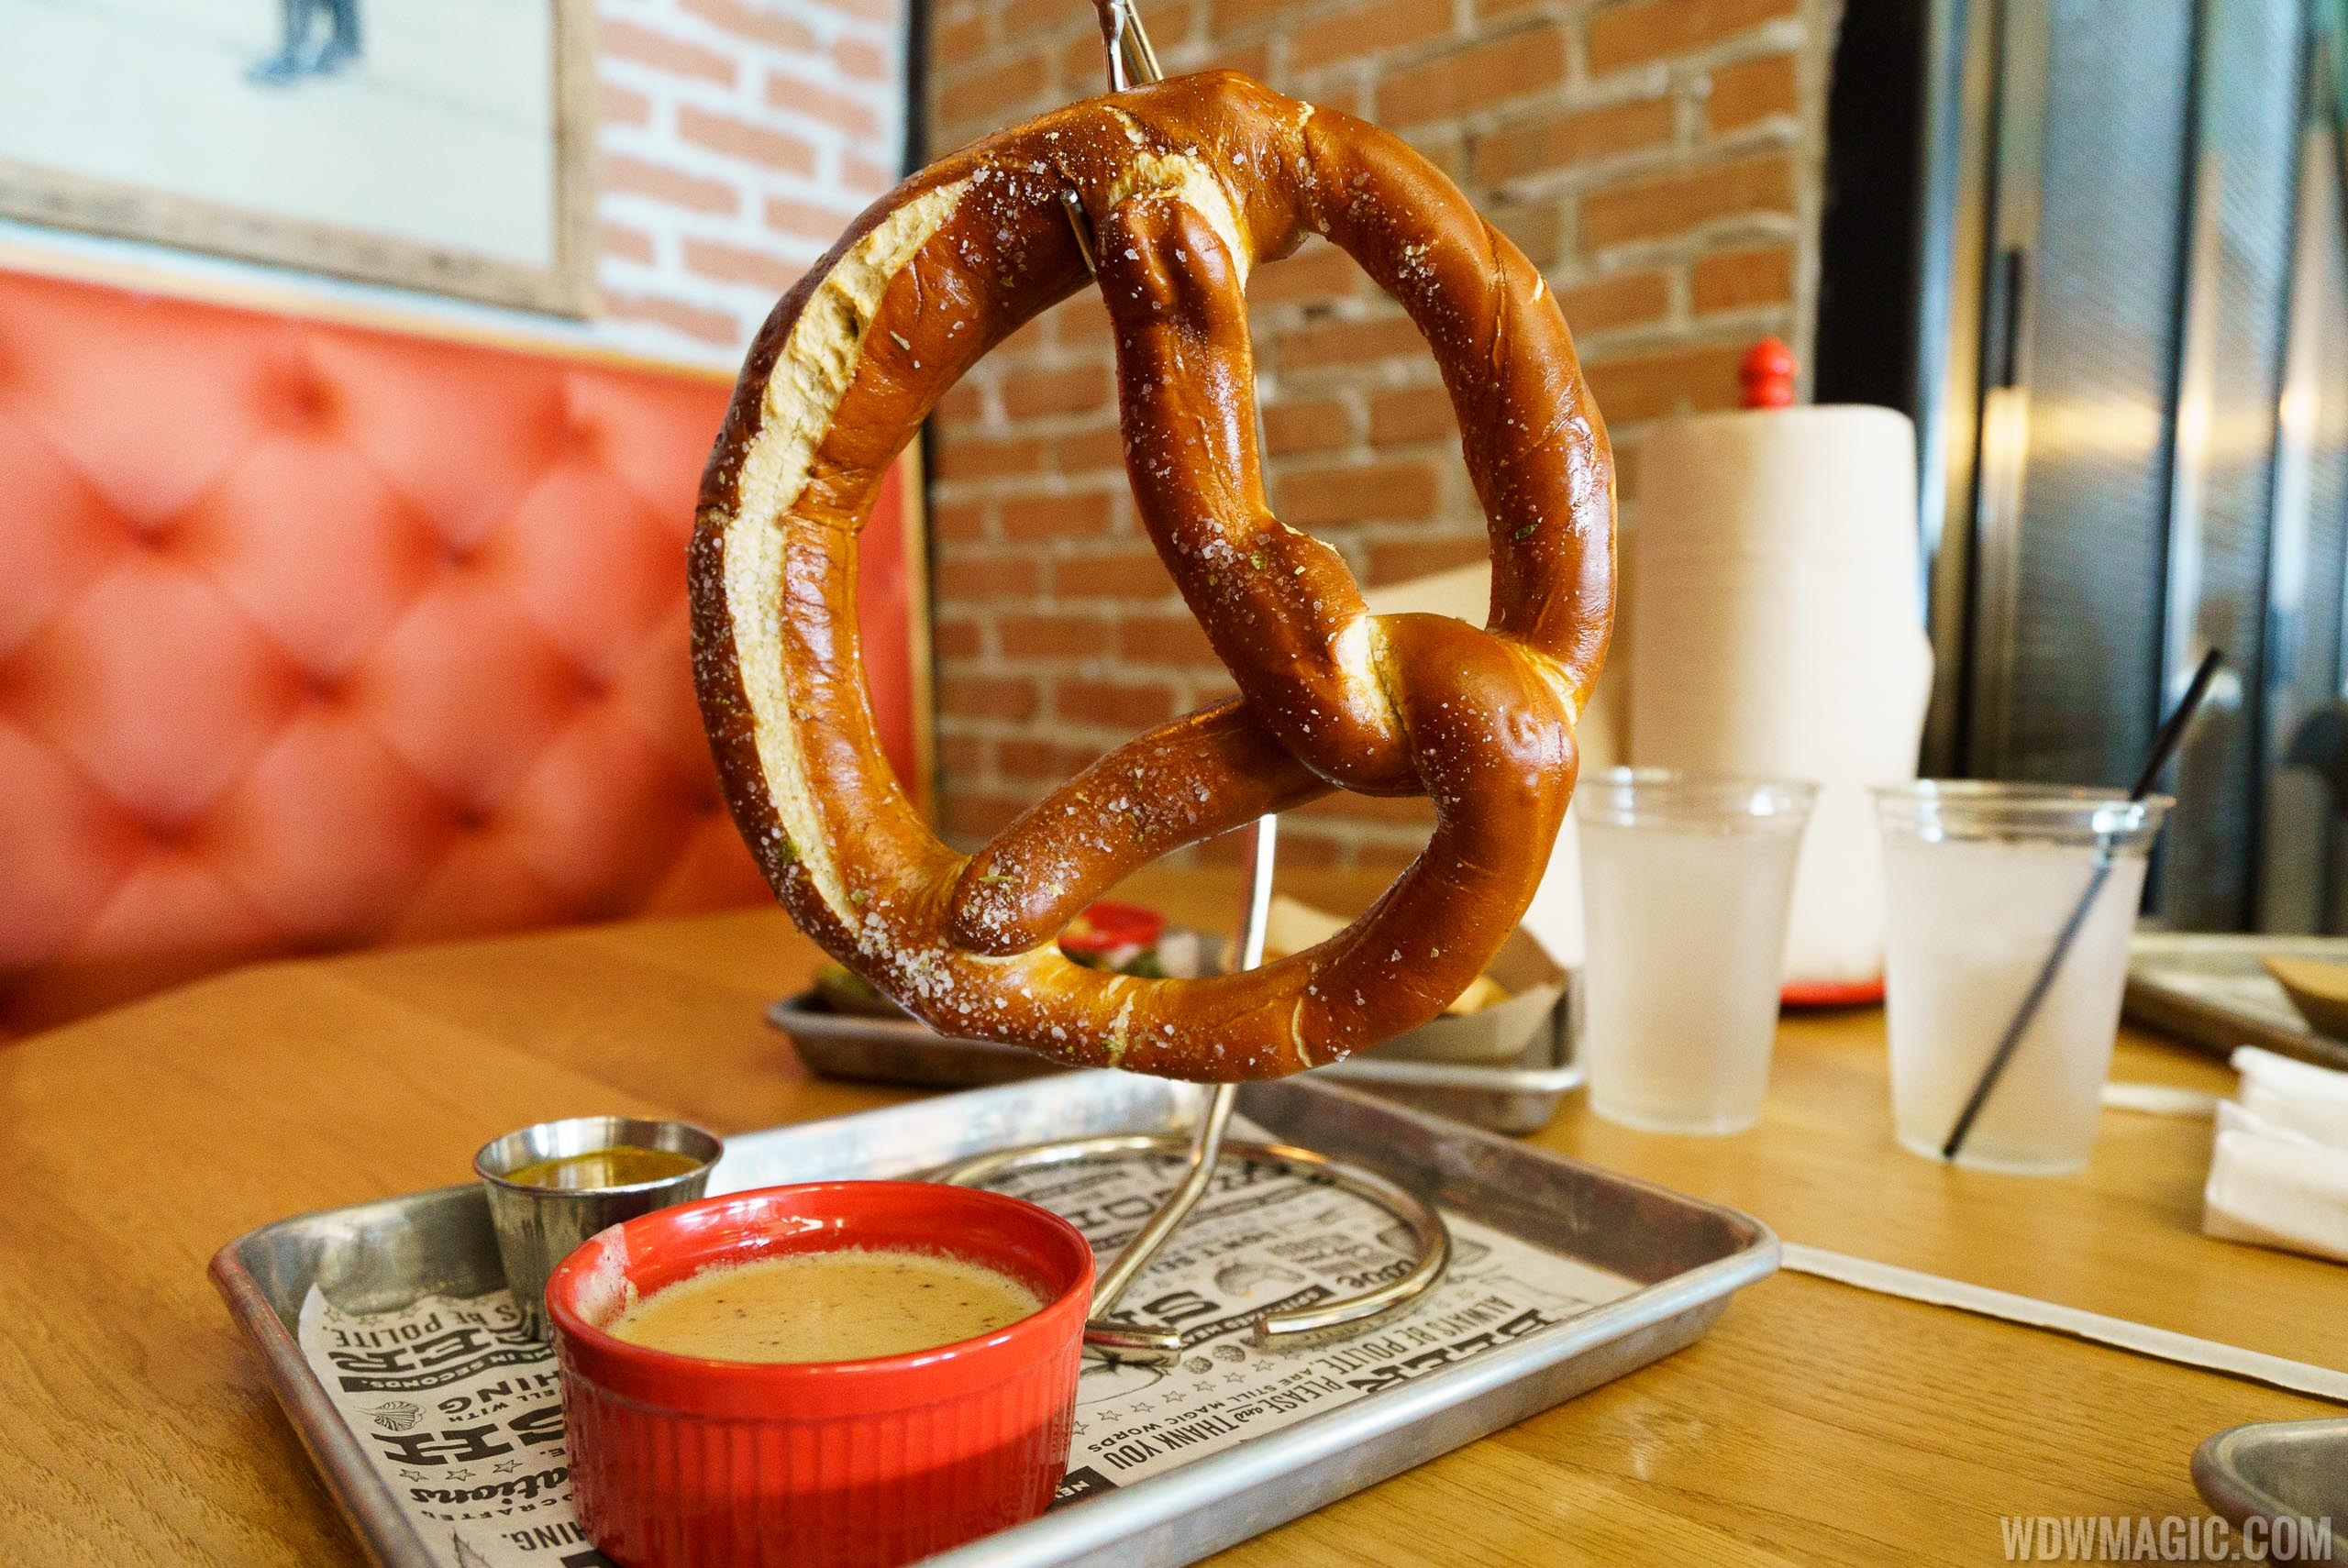 The Polite Pig - Hop Salt Pretzel